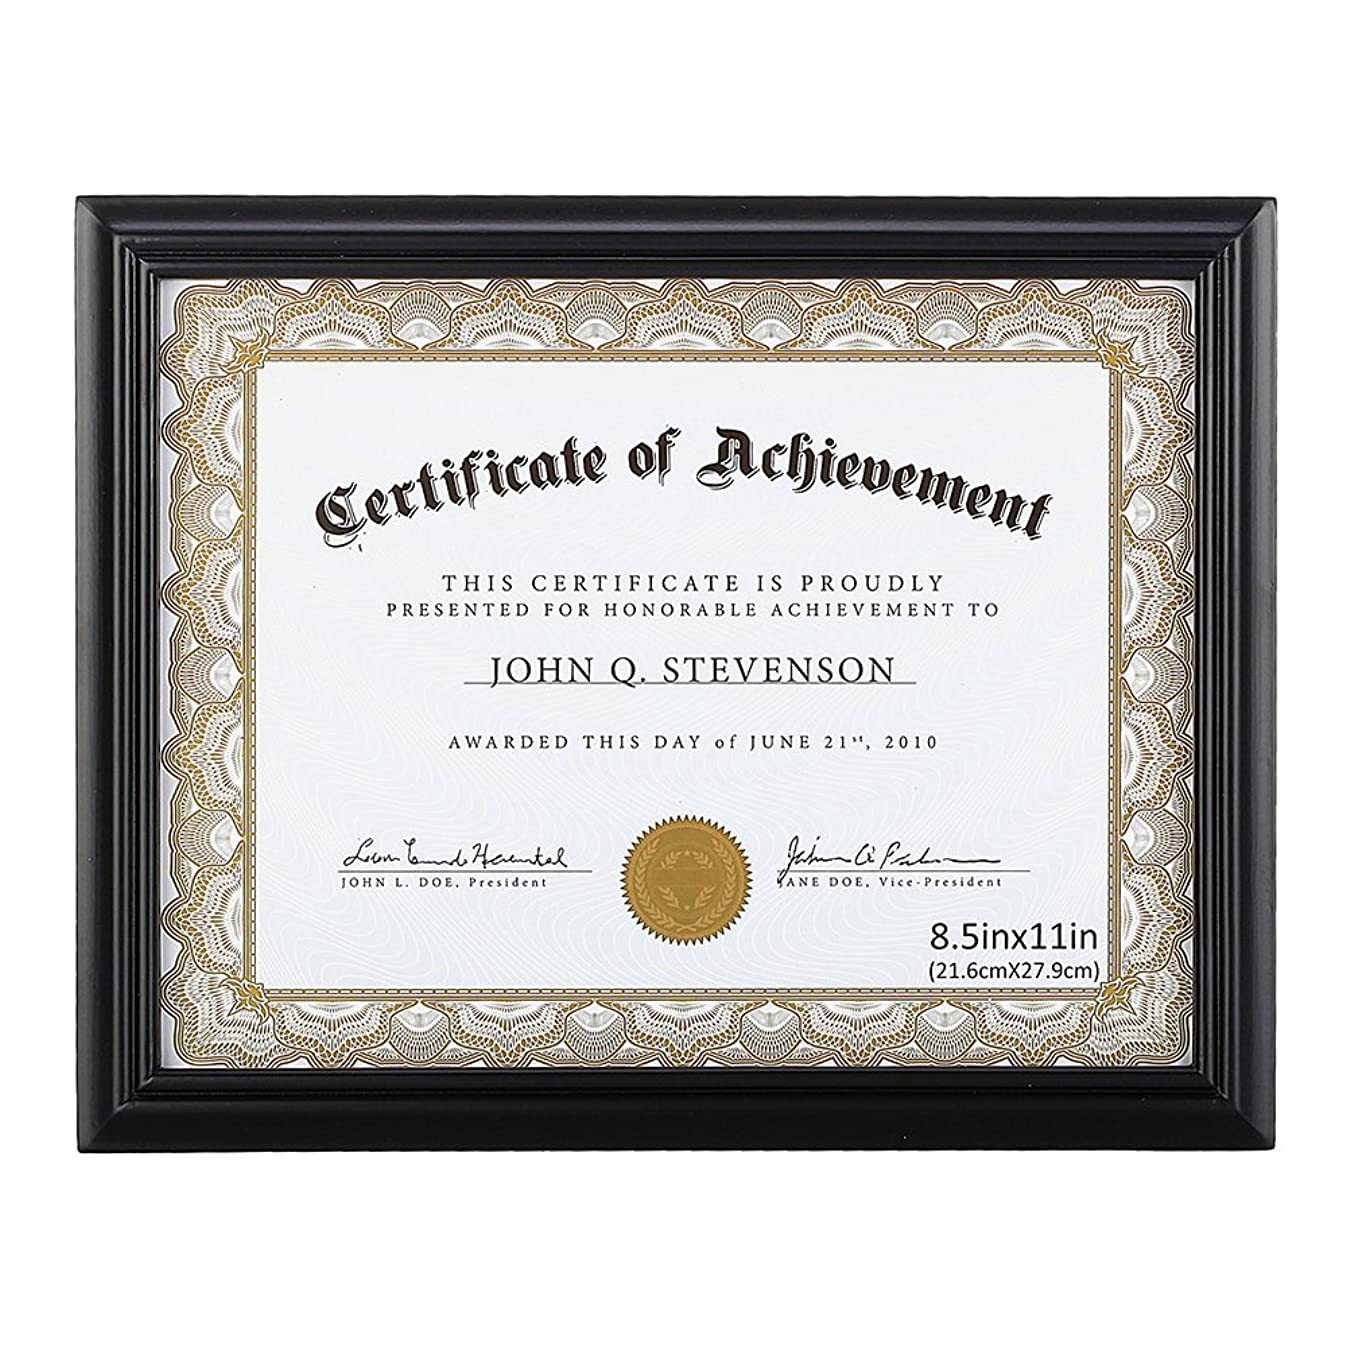 RPJC 8.5x11 Document Frame/Certificate Frames Made of Solid Wood High Definition Glass and Display Certificates, Standard Paper Frame Black